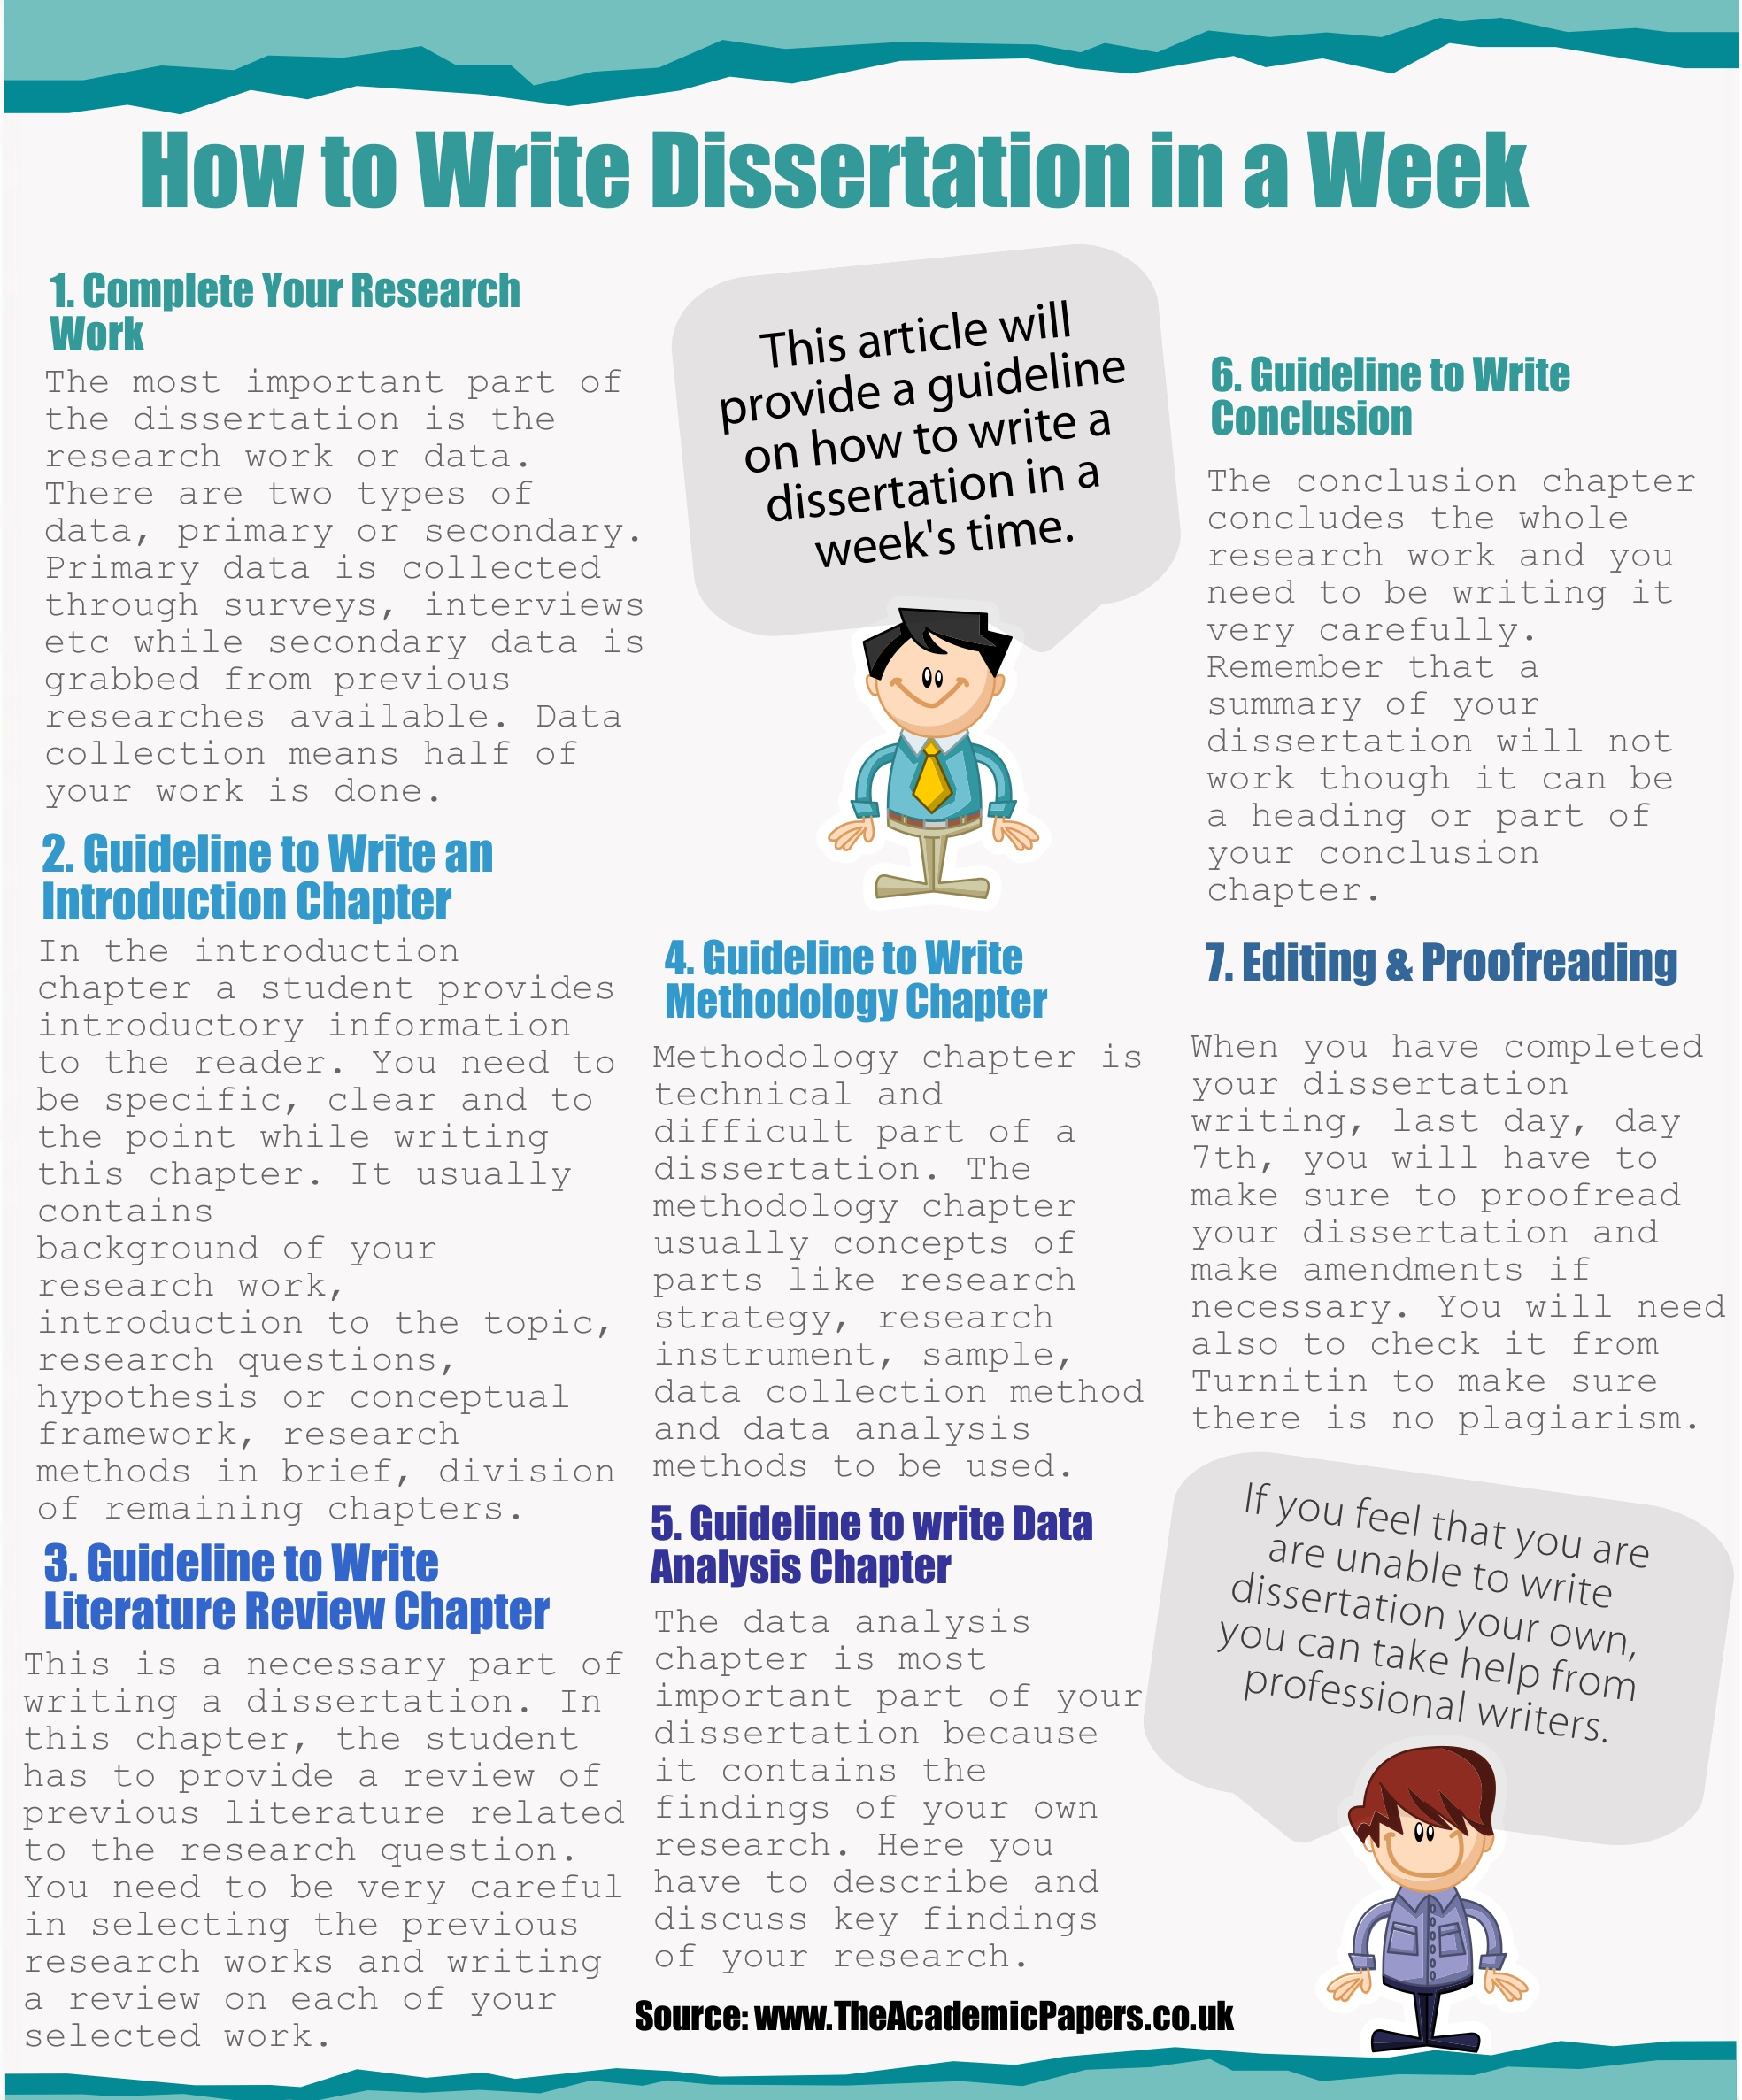 write a dissertation in a week Writing a dissertation can be, and quite often is, the biggest  one chapter for  comments and pick up the prior week's chapter to start editing.